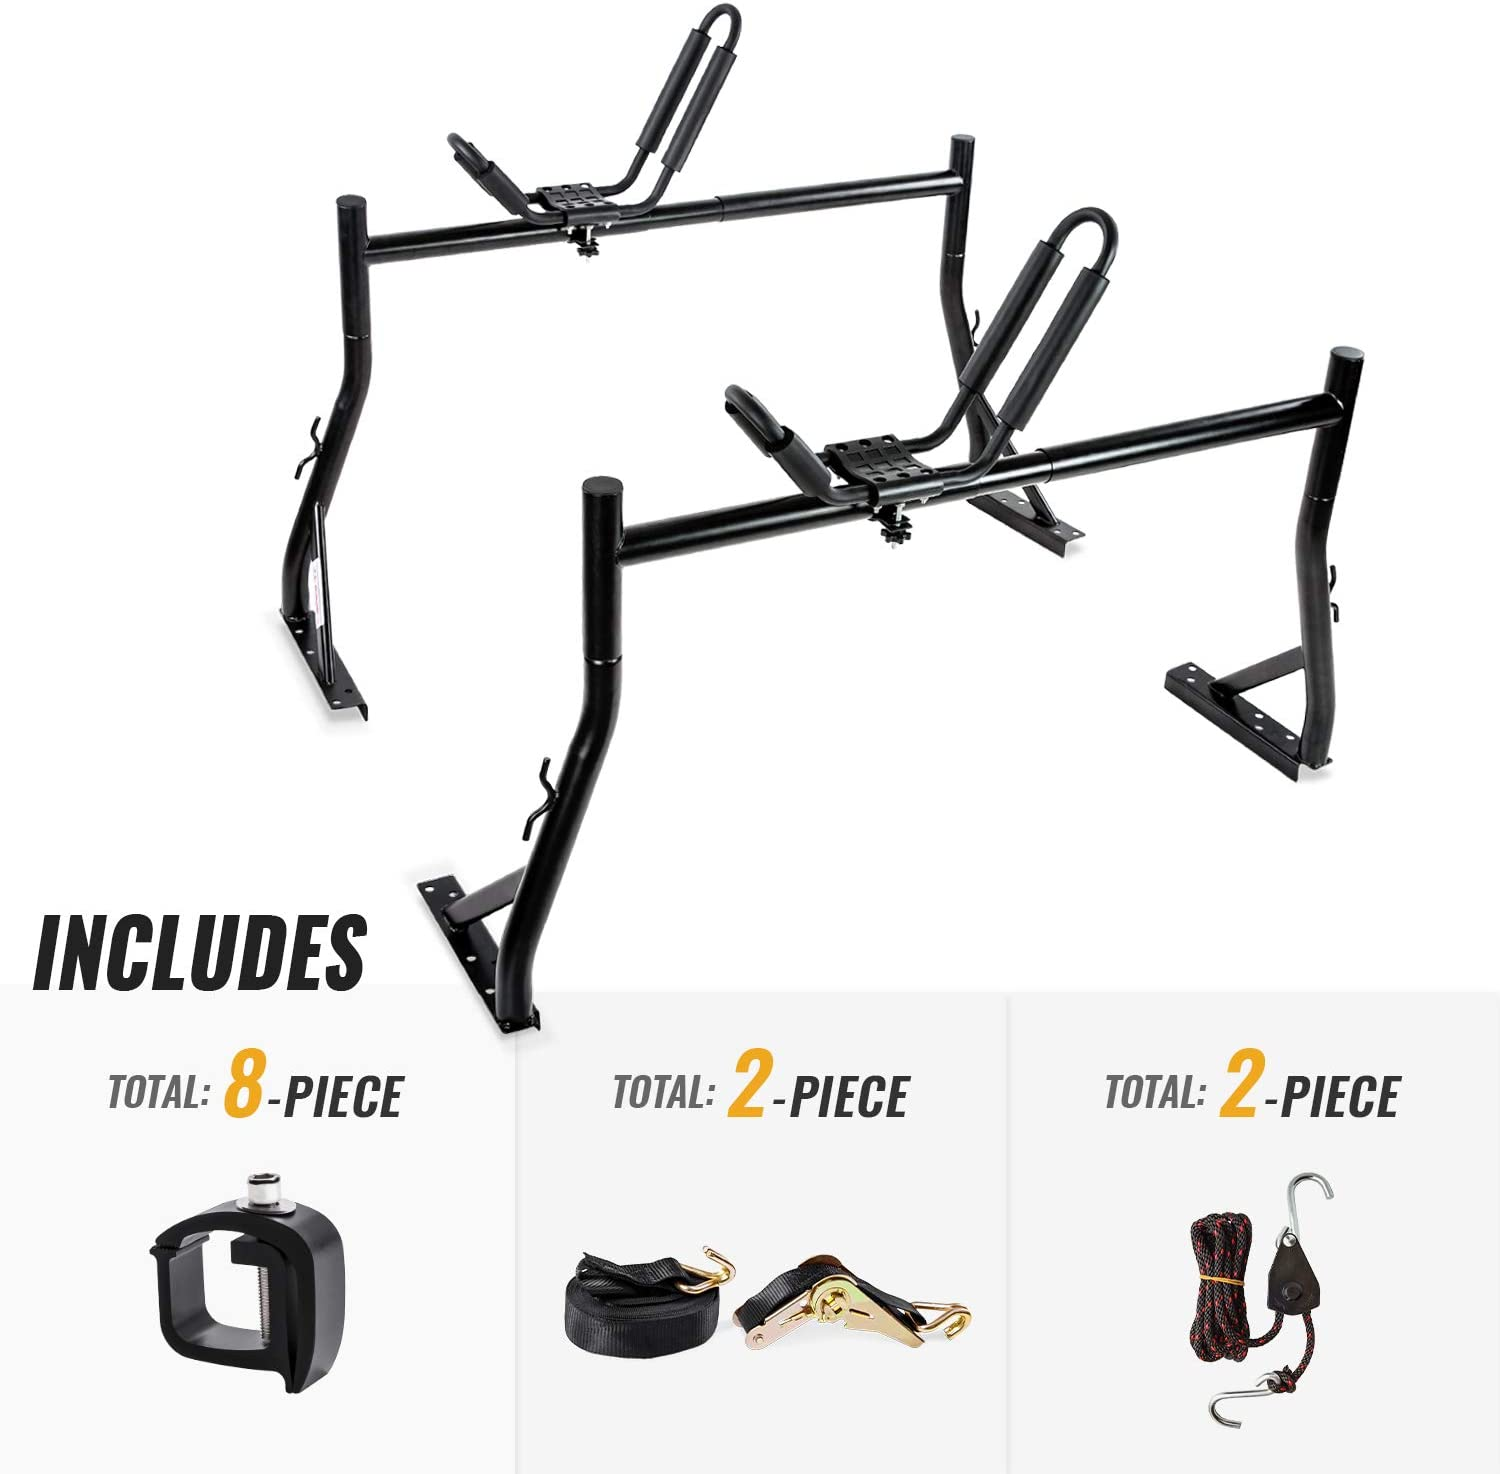 AA-Racks Model X35 Truck Rack with 8 Non-Drilling C-Clamps and Kayak J-Racks with Ratchet Lashing Straps & Ratchet Bow and Stern Tie Down Straps